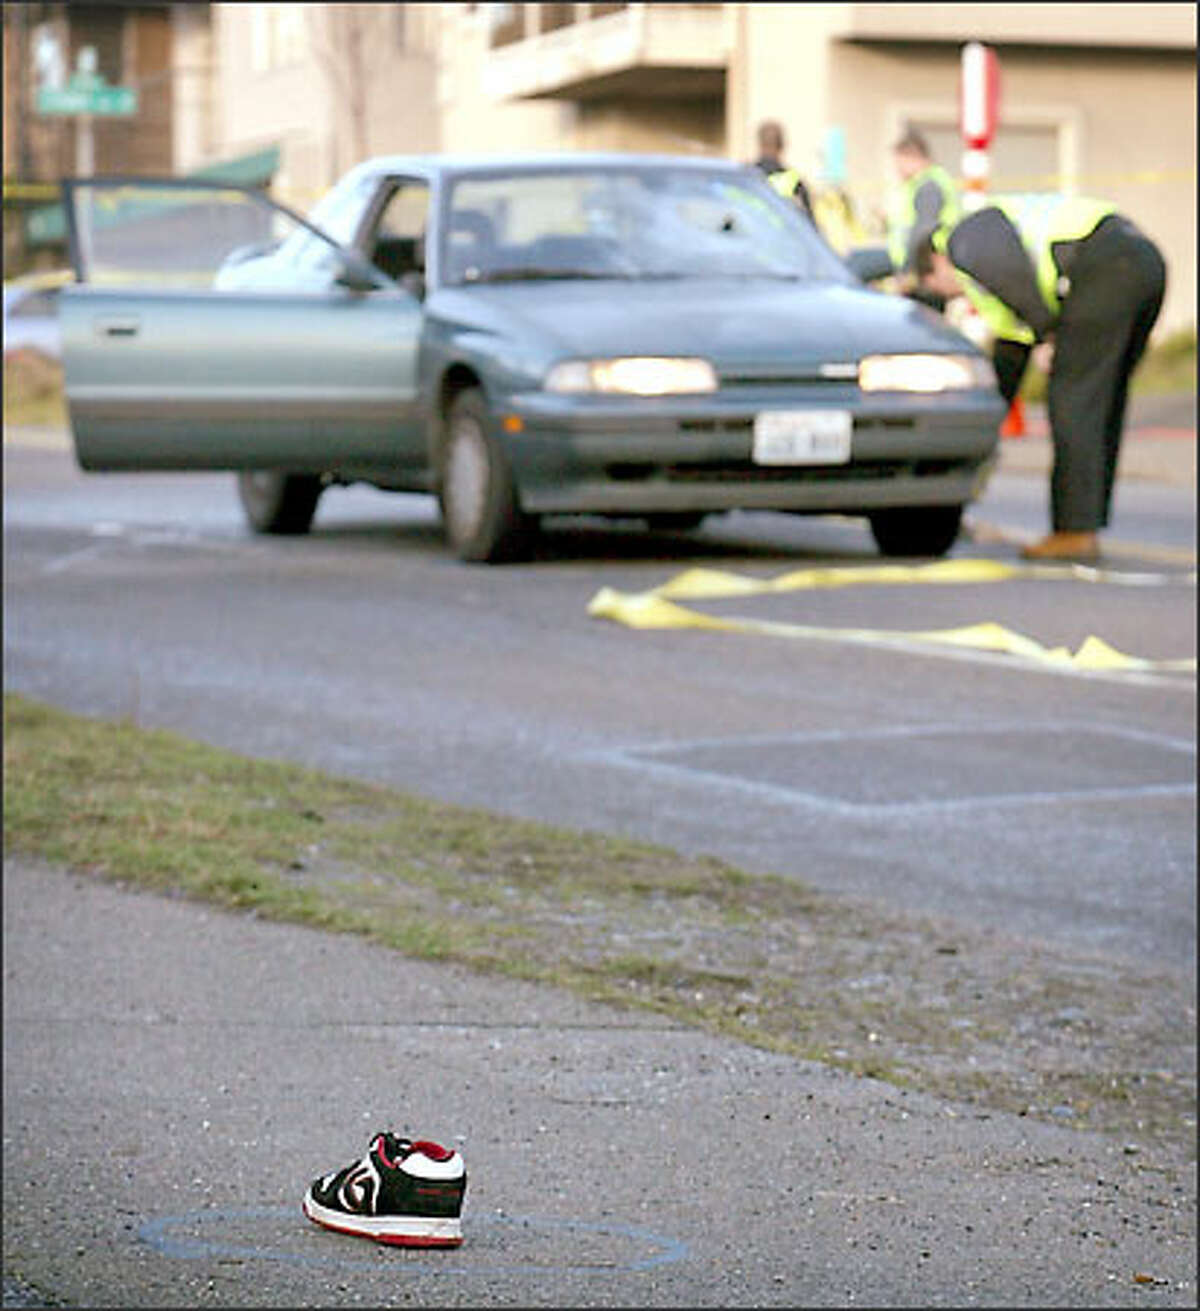 The shoe of a Ballard High student who was hit by a car yesterday remains in the street as Seattle police investigators look over the vehicle.